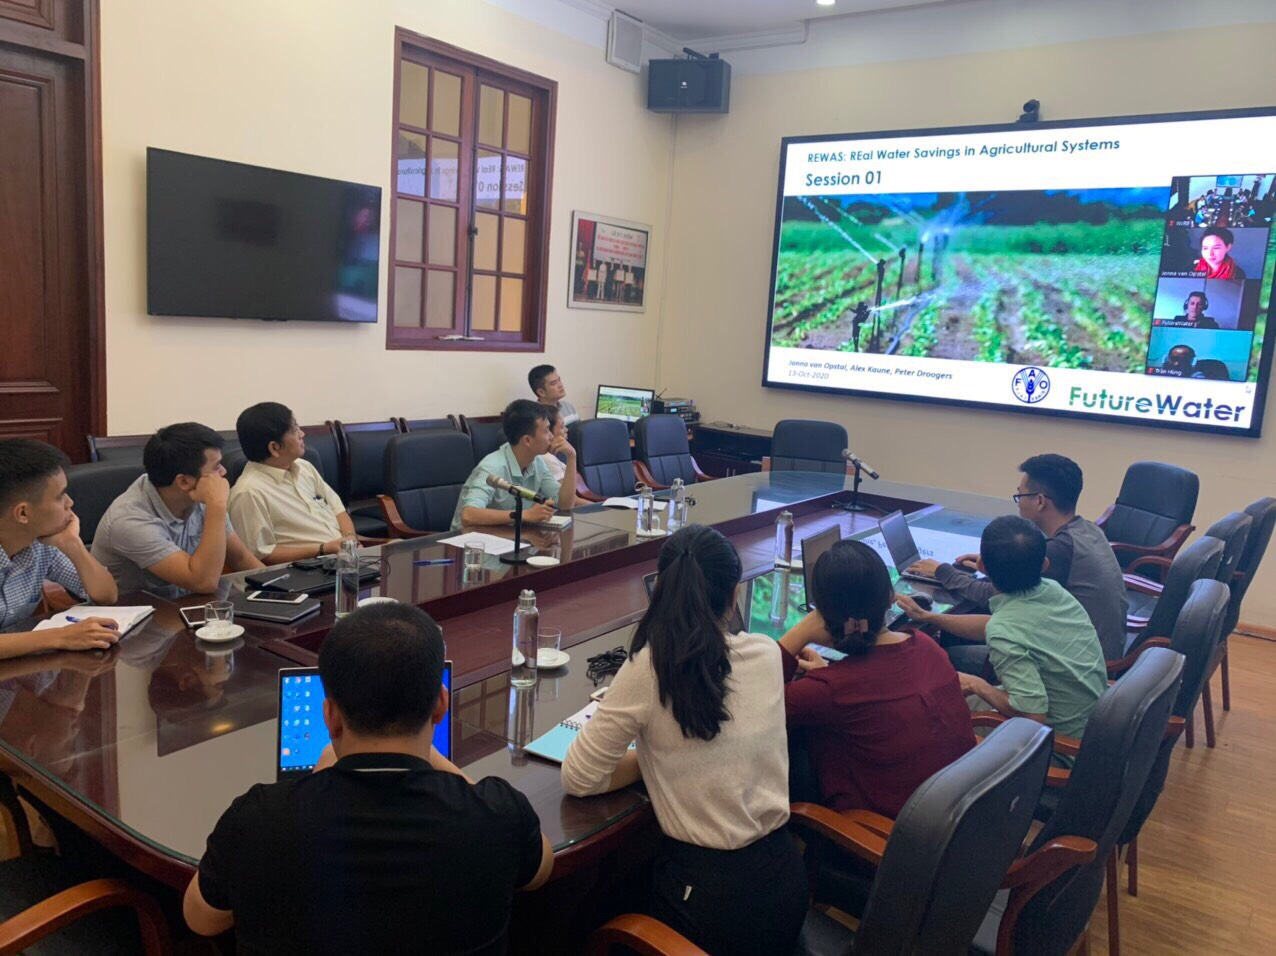 Training on Real Water Savings in Agricultural Systems (REWAS)